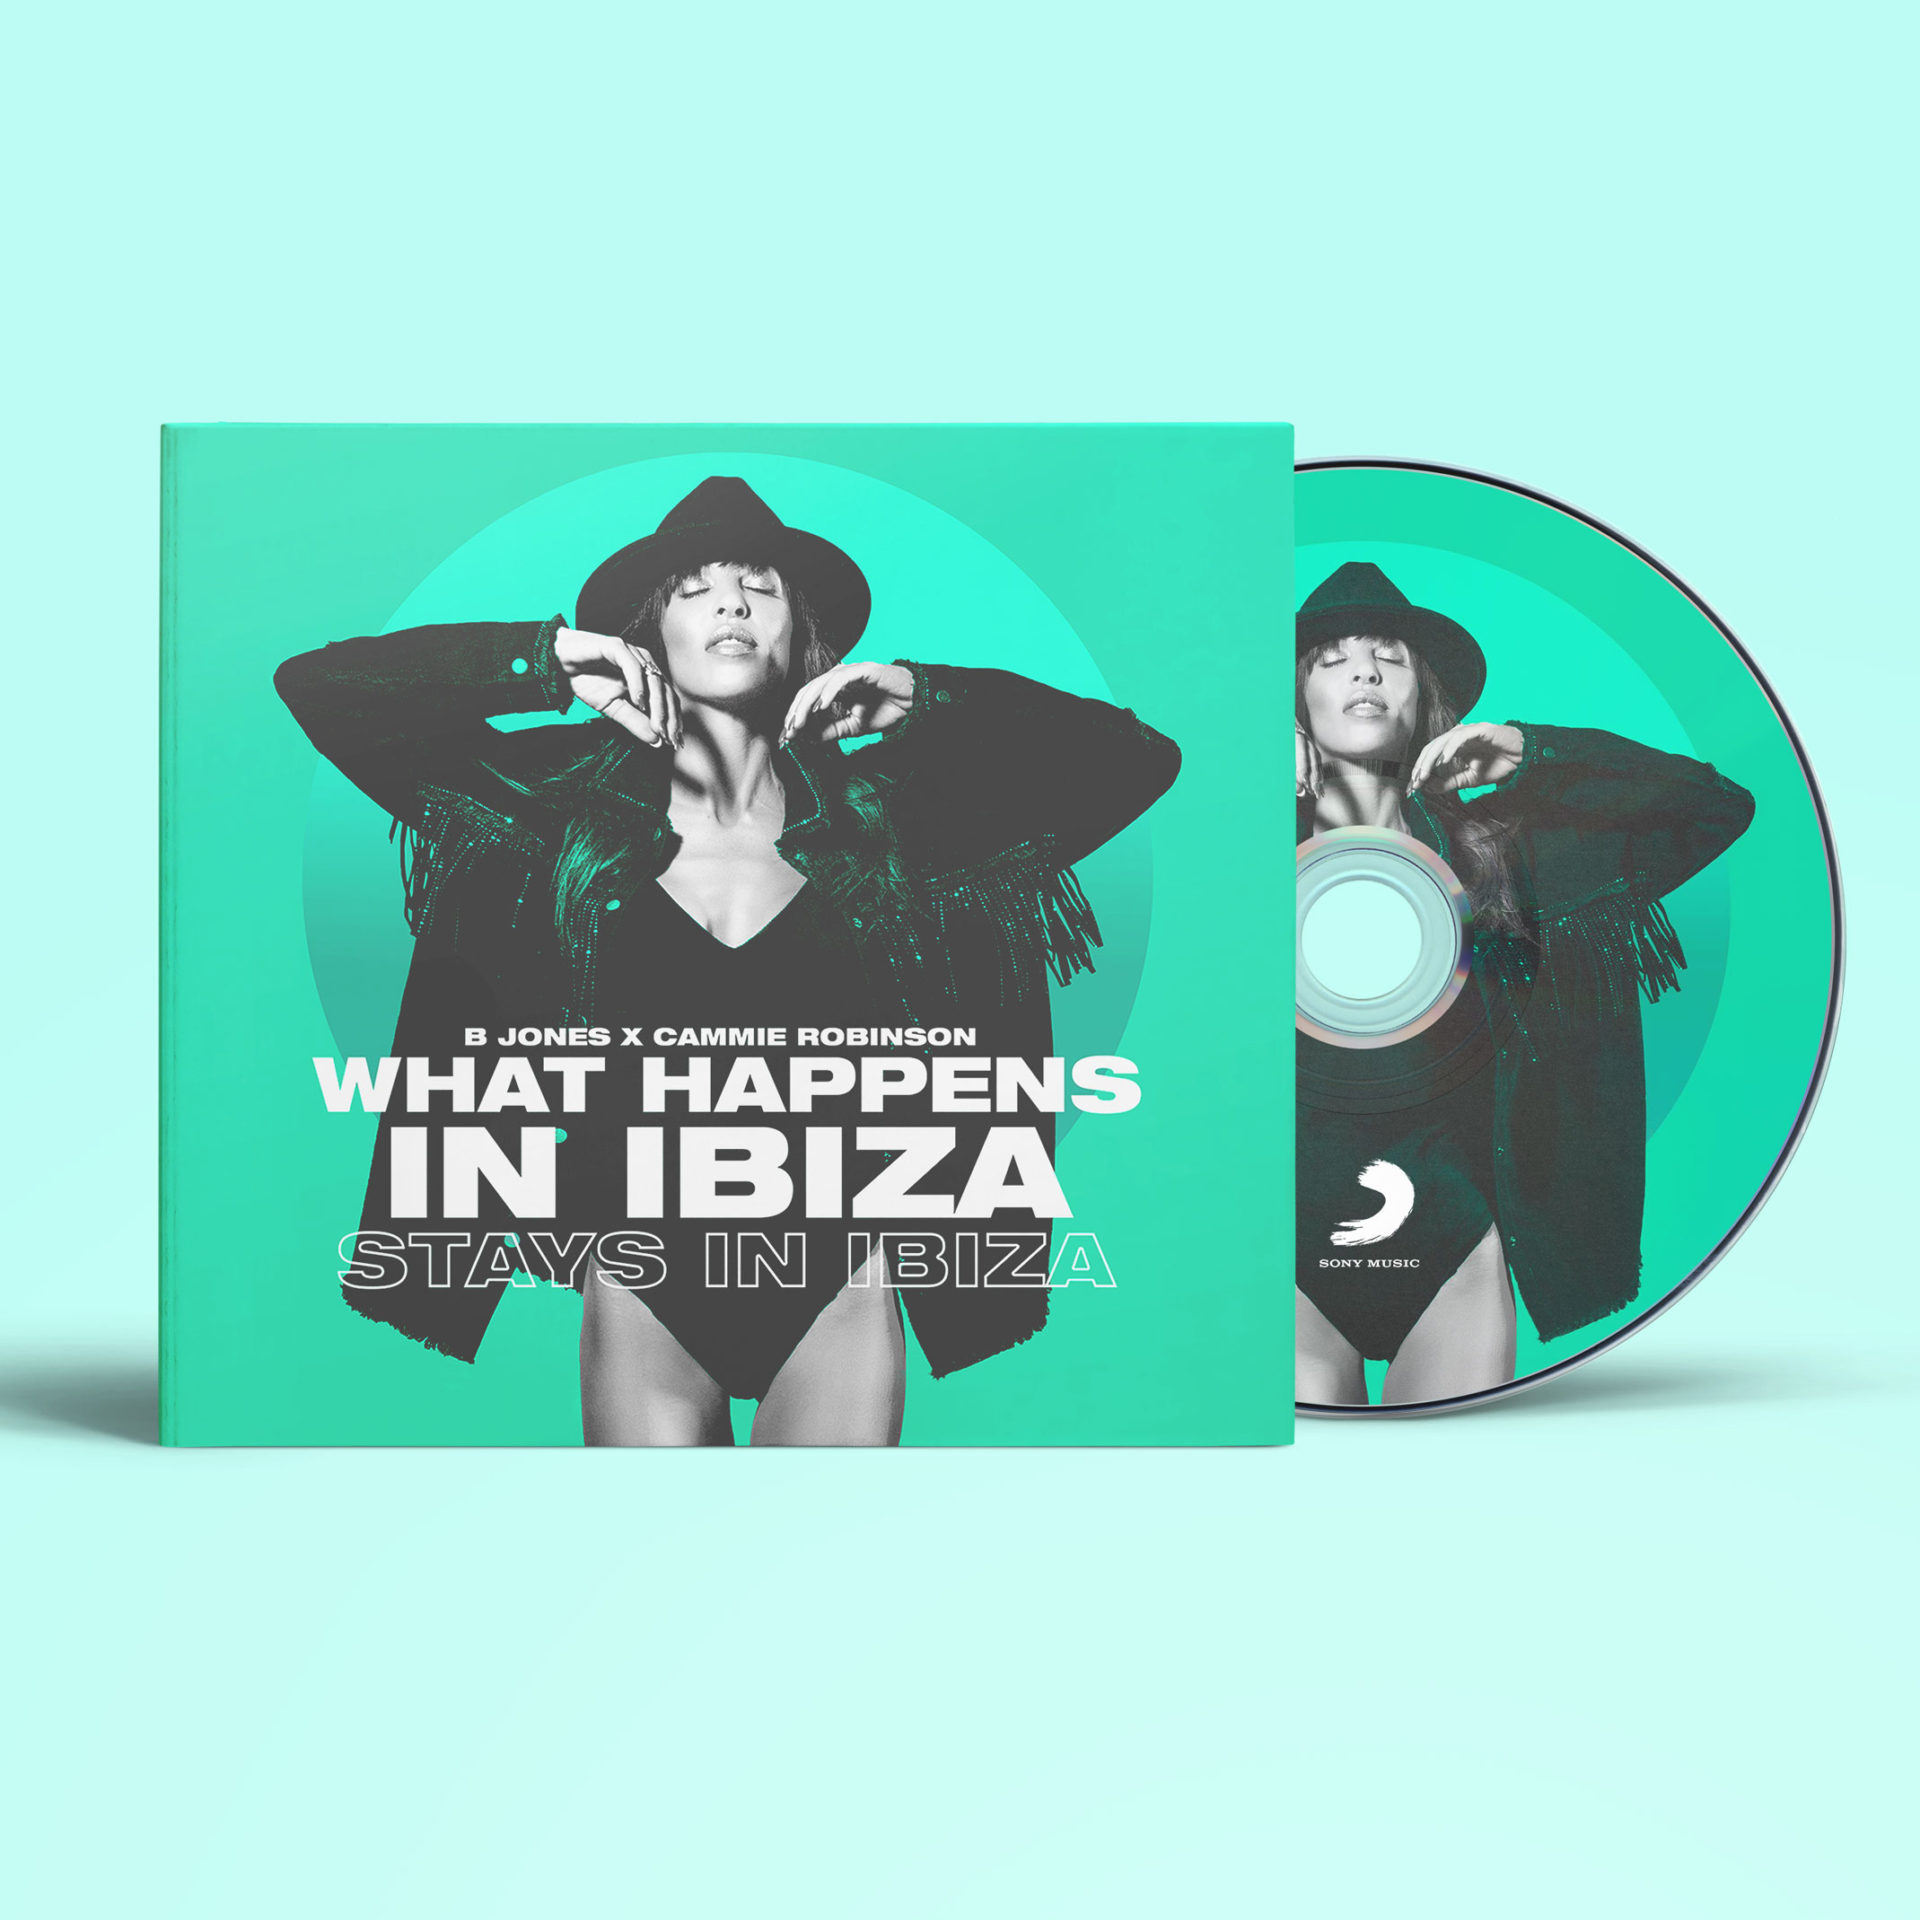 B Jones x Cammie Robinson – What Happens in Ibiza stays in Ibiza